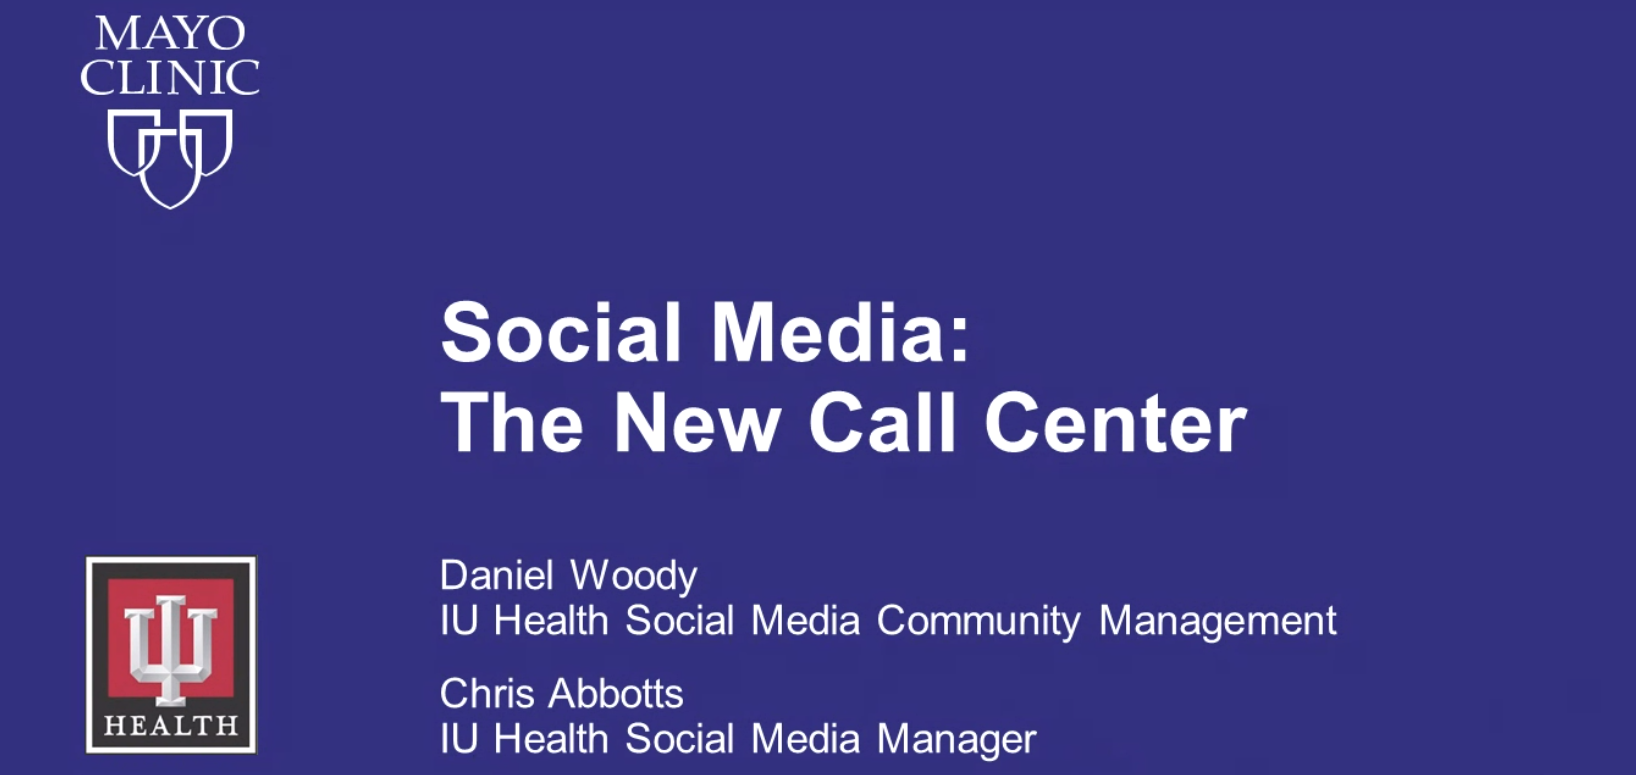 Social Media: The New Call Center